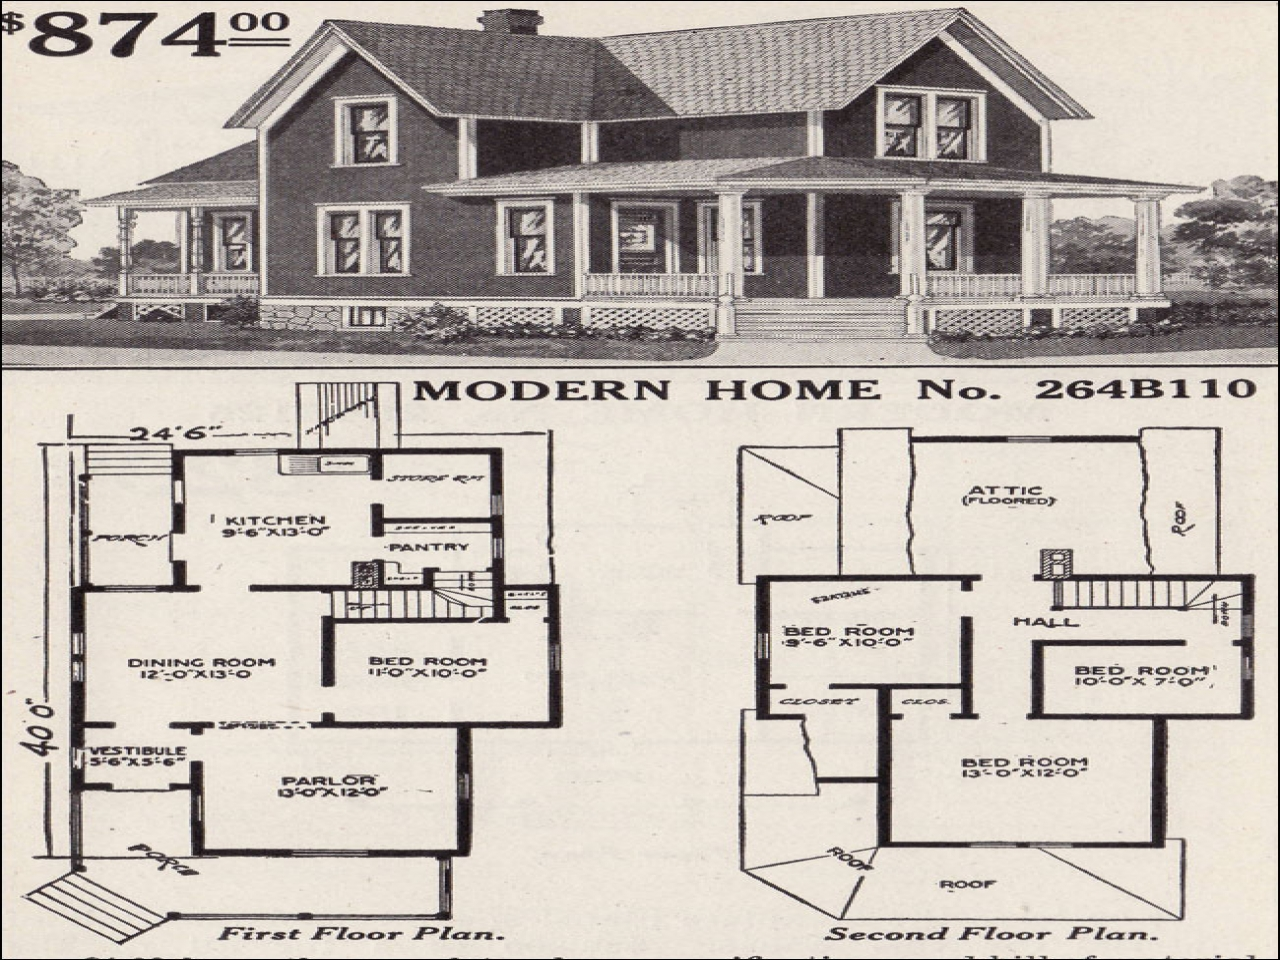 1900 victorian farmhouse plans html with E183e6c464c6af56 Cottage Style House Farmhouse Style House Floor Plans on Early 1900s Architecture also Bb 1900 2 moreover 66ba57660abf1e6d Old Farmhouse Style House Plans Old Farmhouse Style House Plans together with Folk Victorian House Plans further 7d3722c975c22b62 American Foursquare House Sears Plan 1900 American Foursquare House Plans.